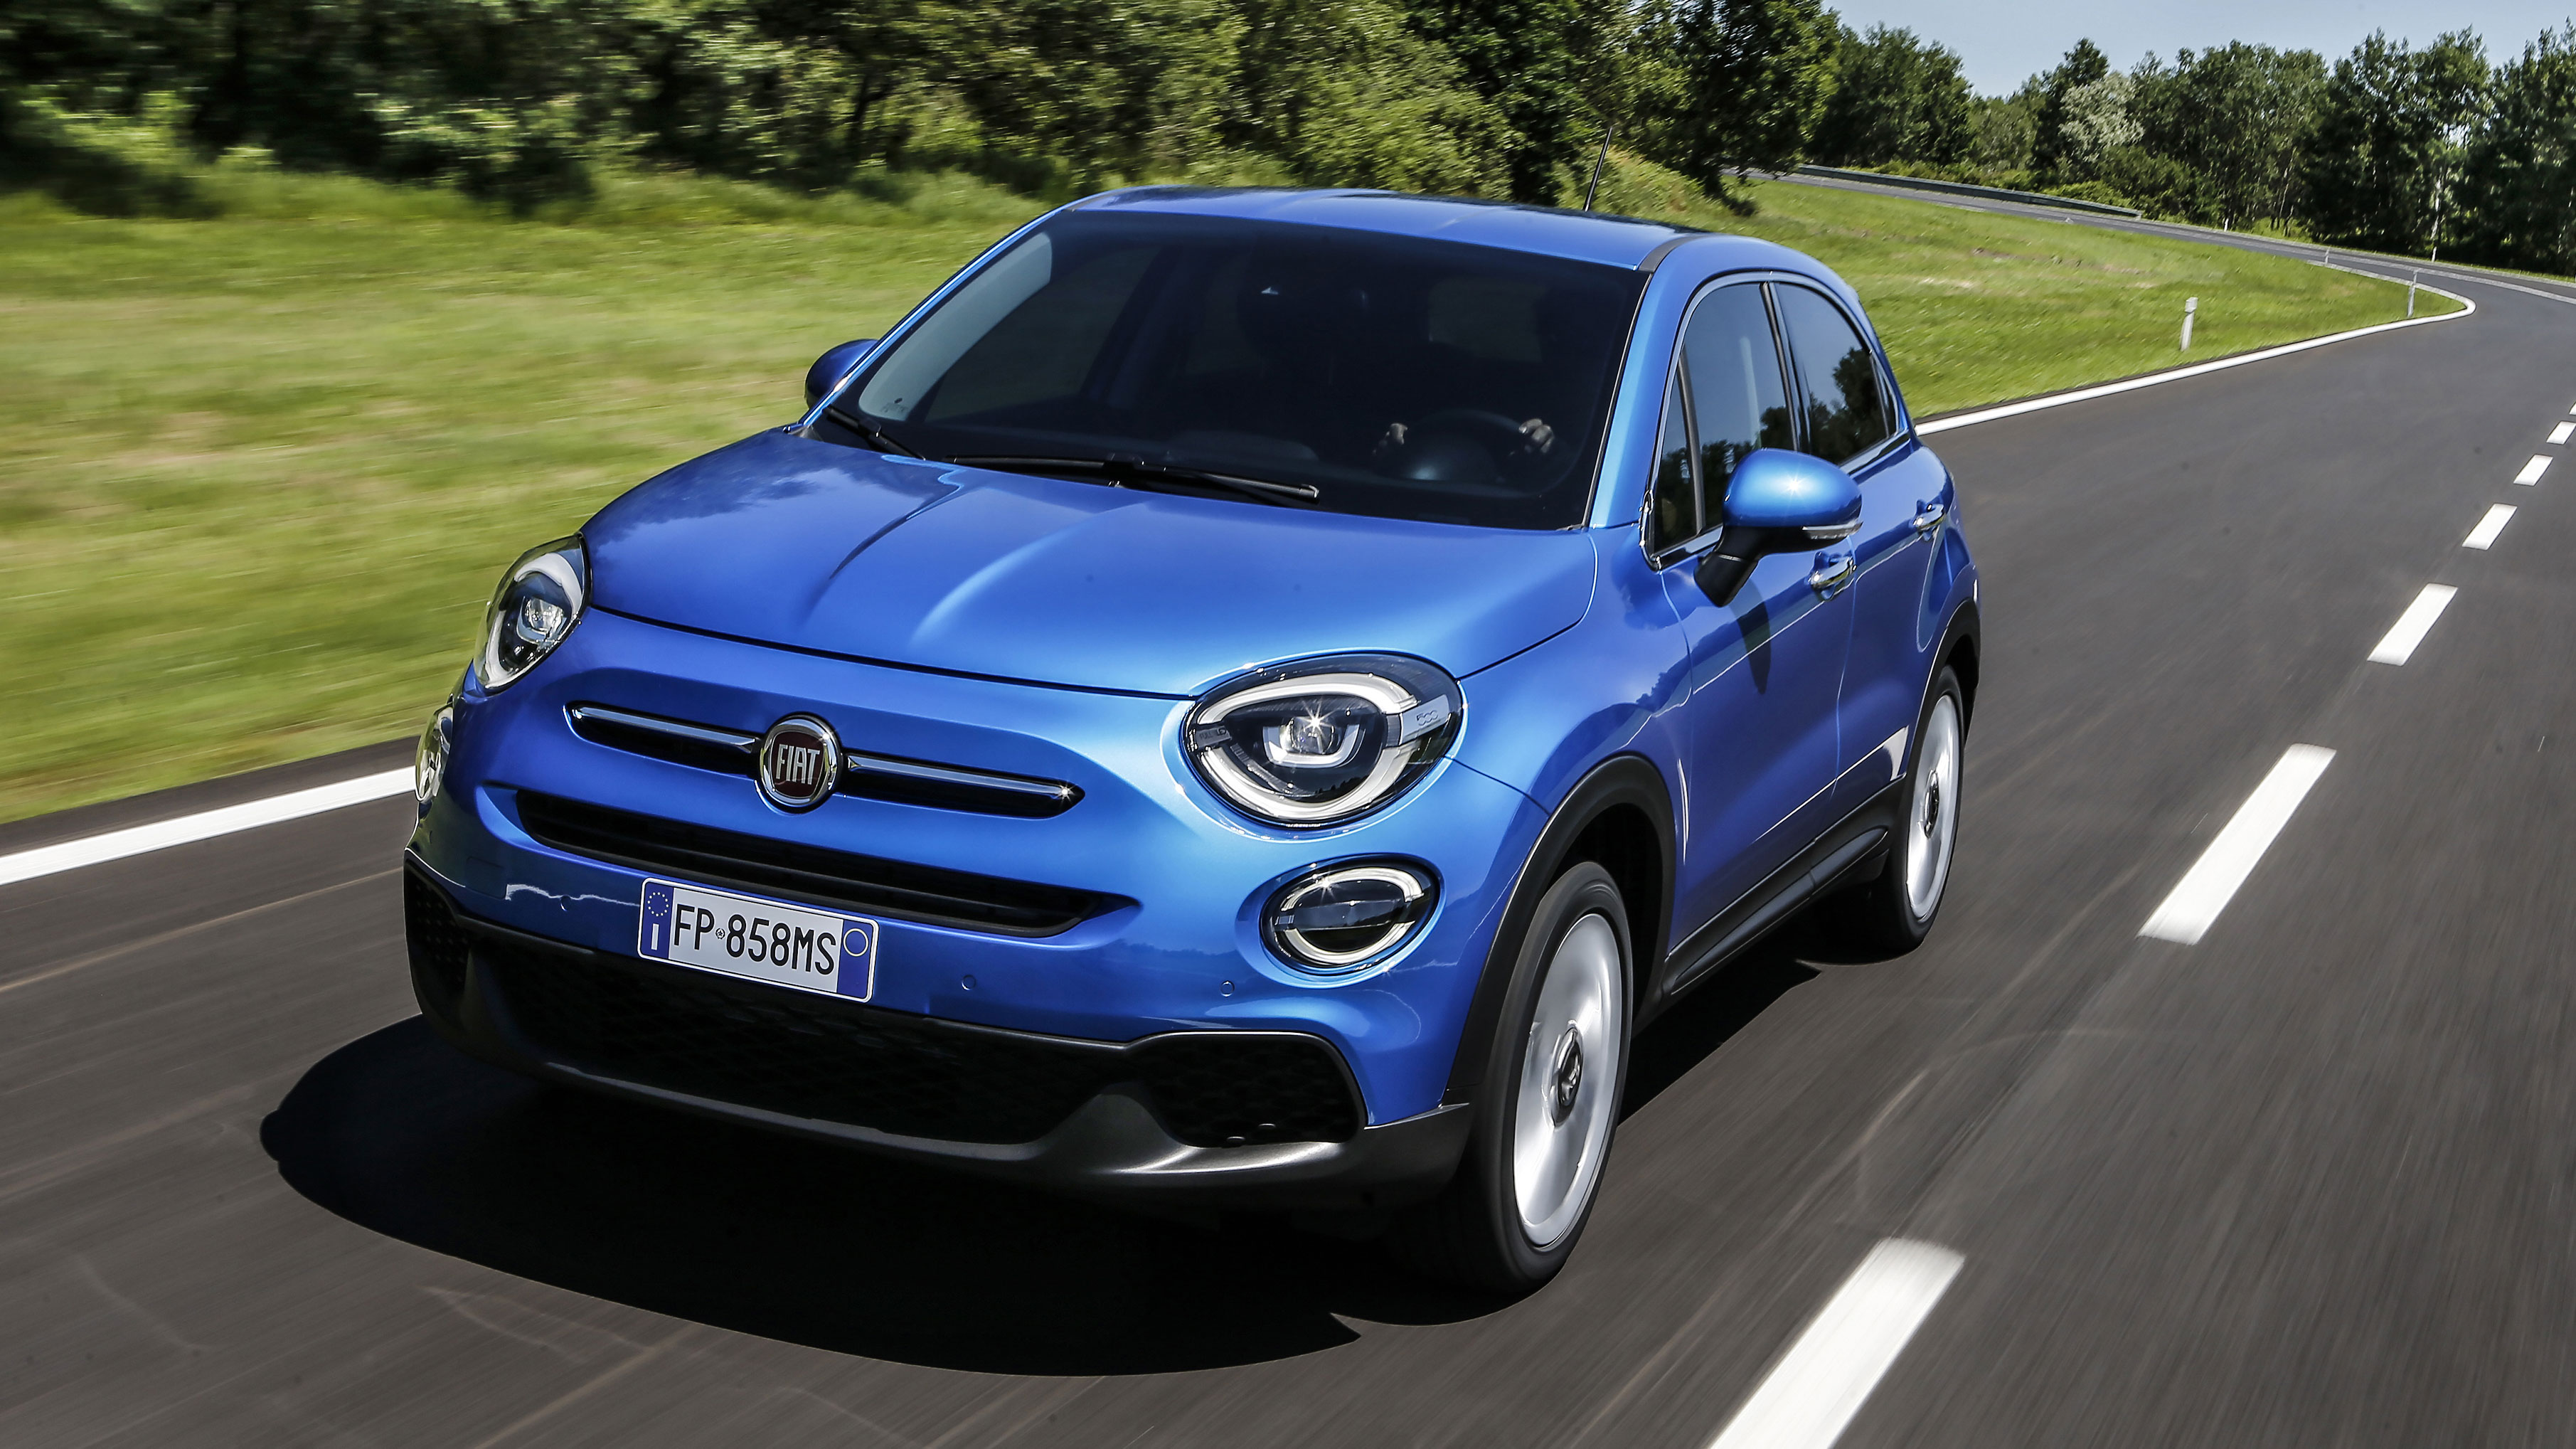 Cars for Sale Near Me 500 Inspirational Automatic Fiat Used Cars for Sale On Auto Trader Uk